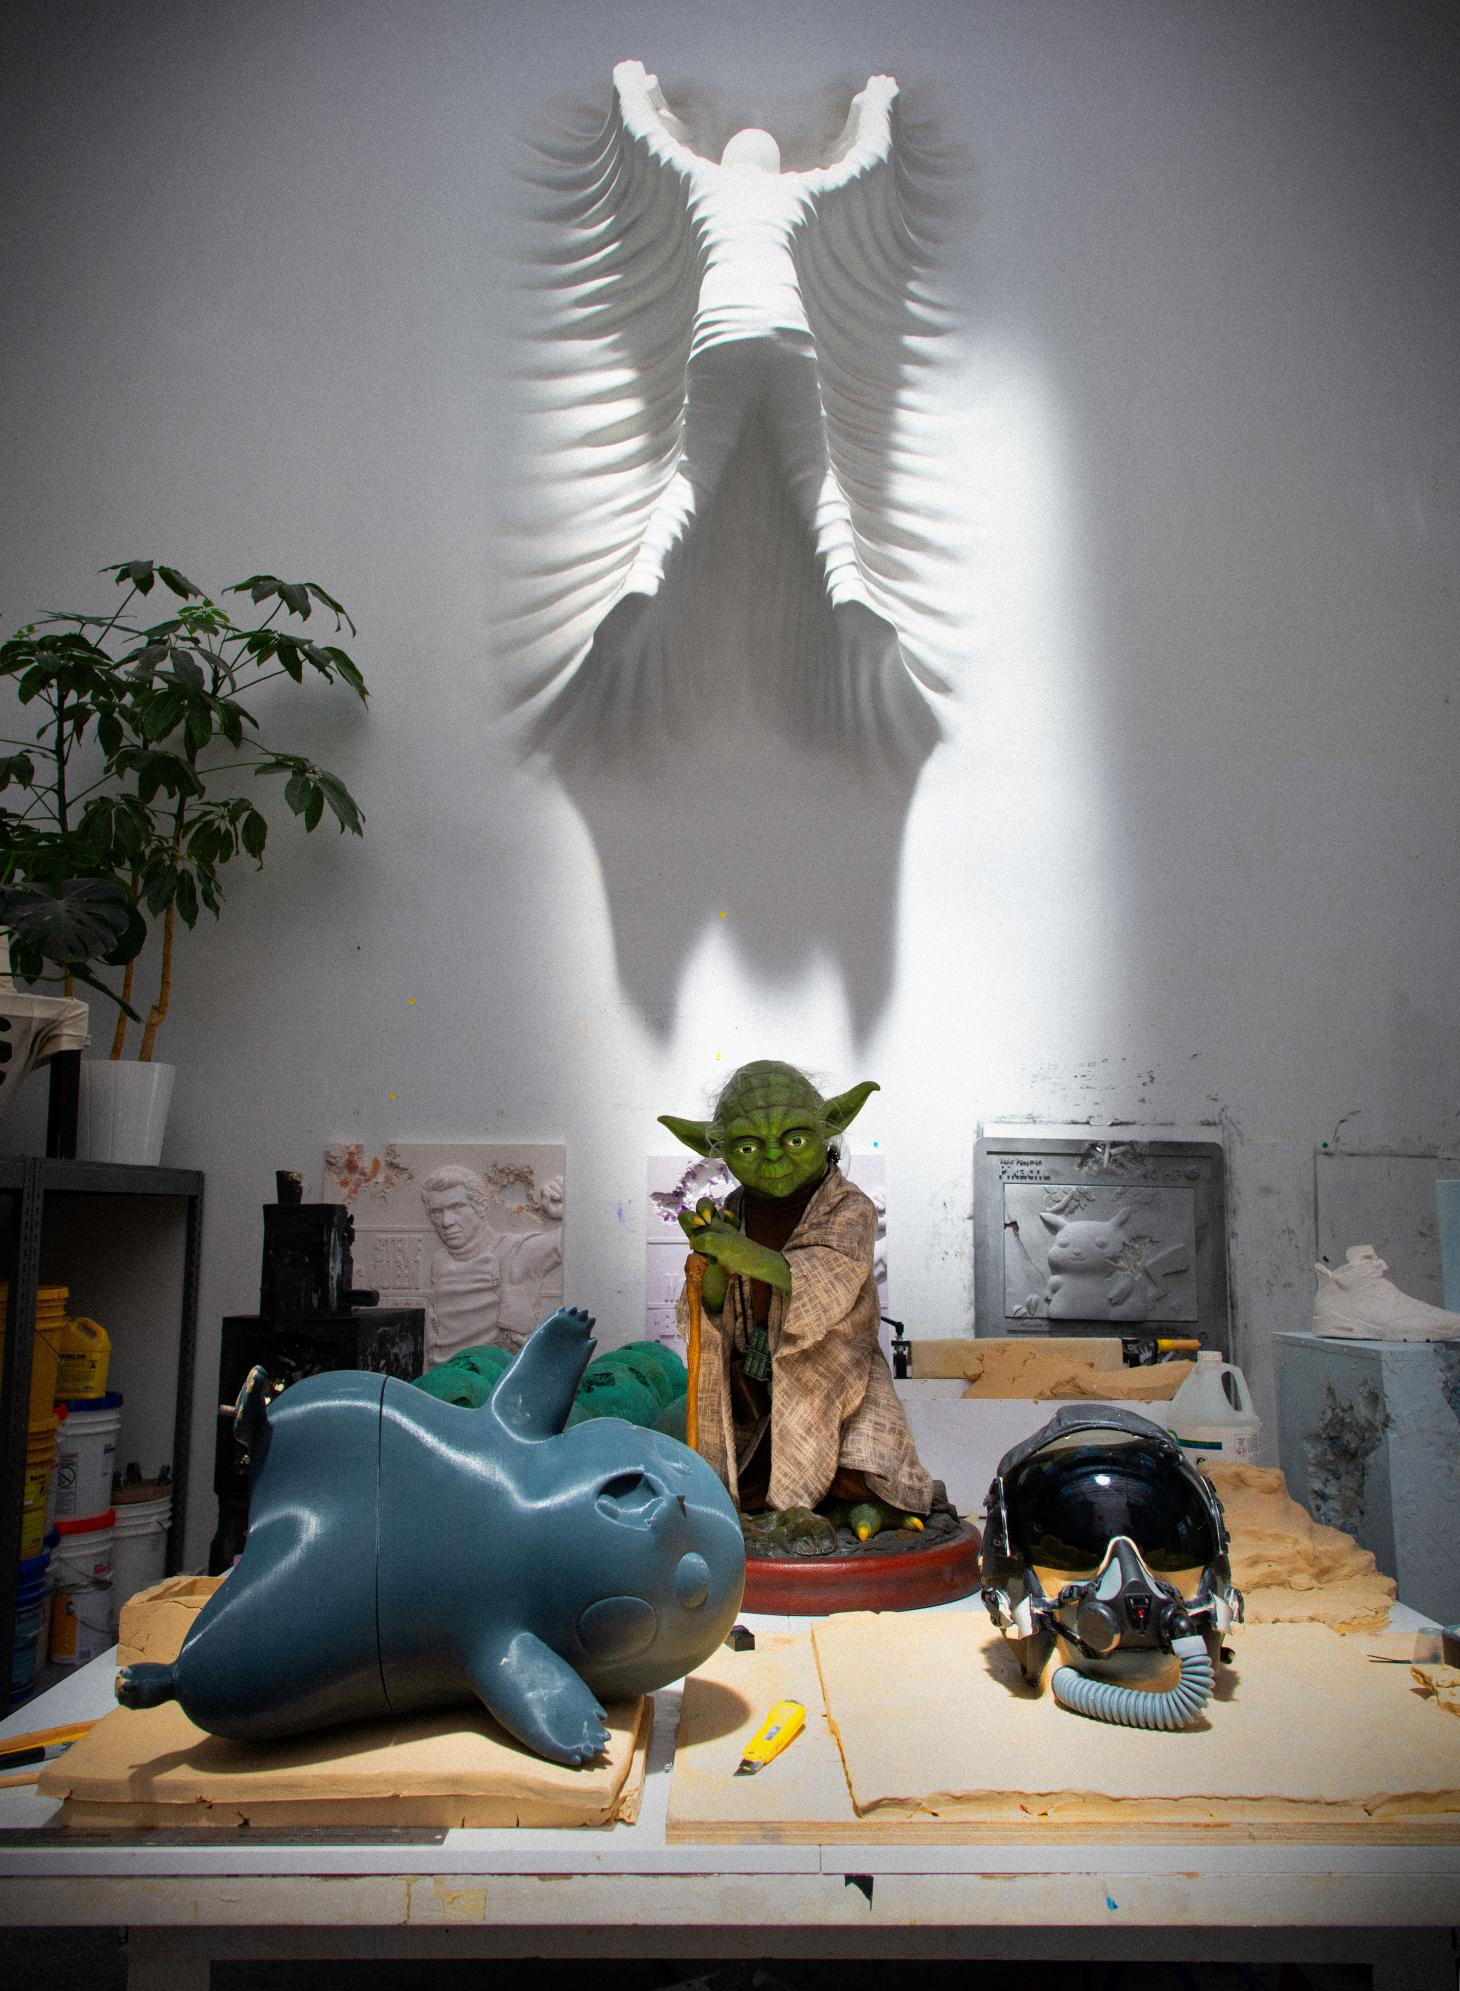 A desk at Daniel Arsham's studio with a 3D printed Pikachu model and a Yoda statue